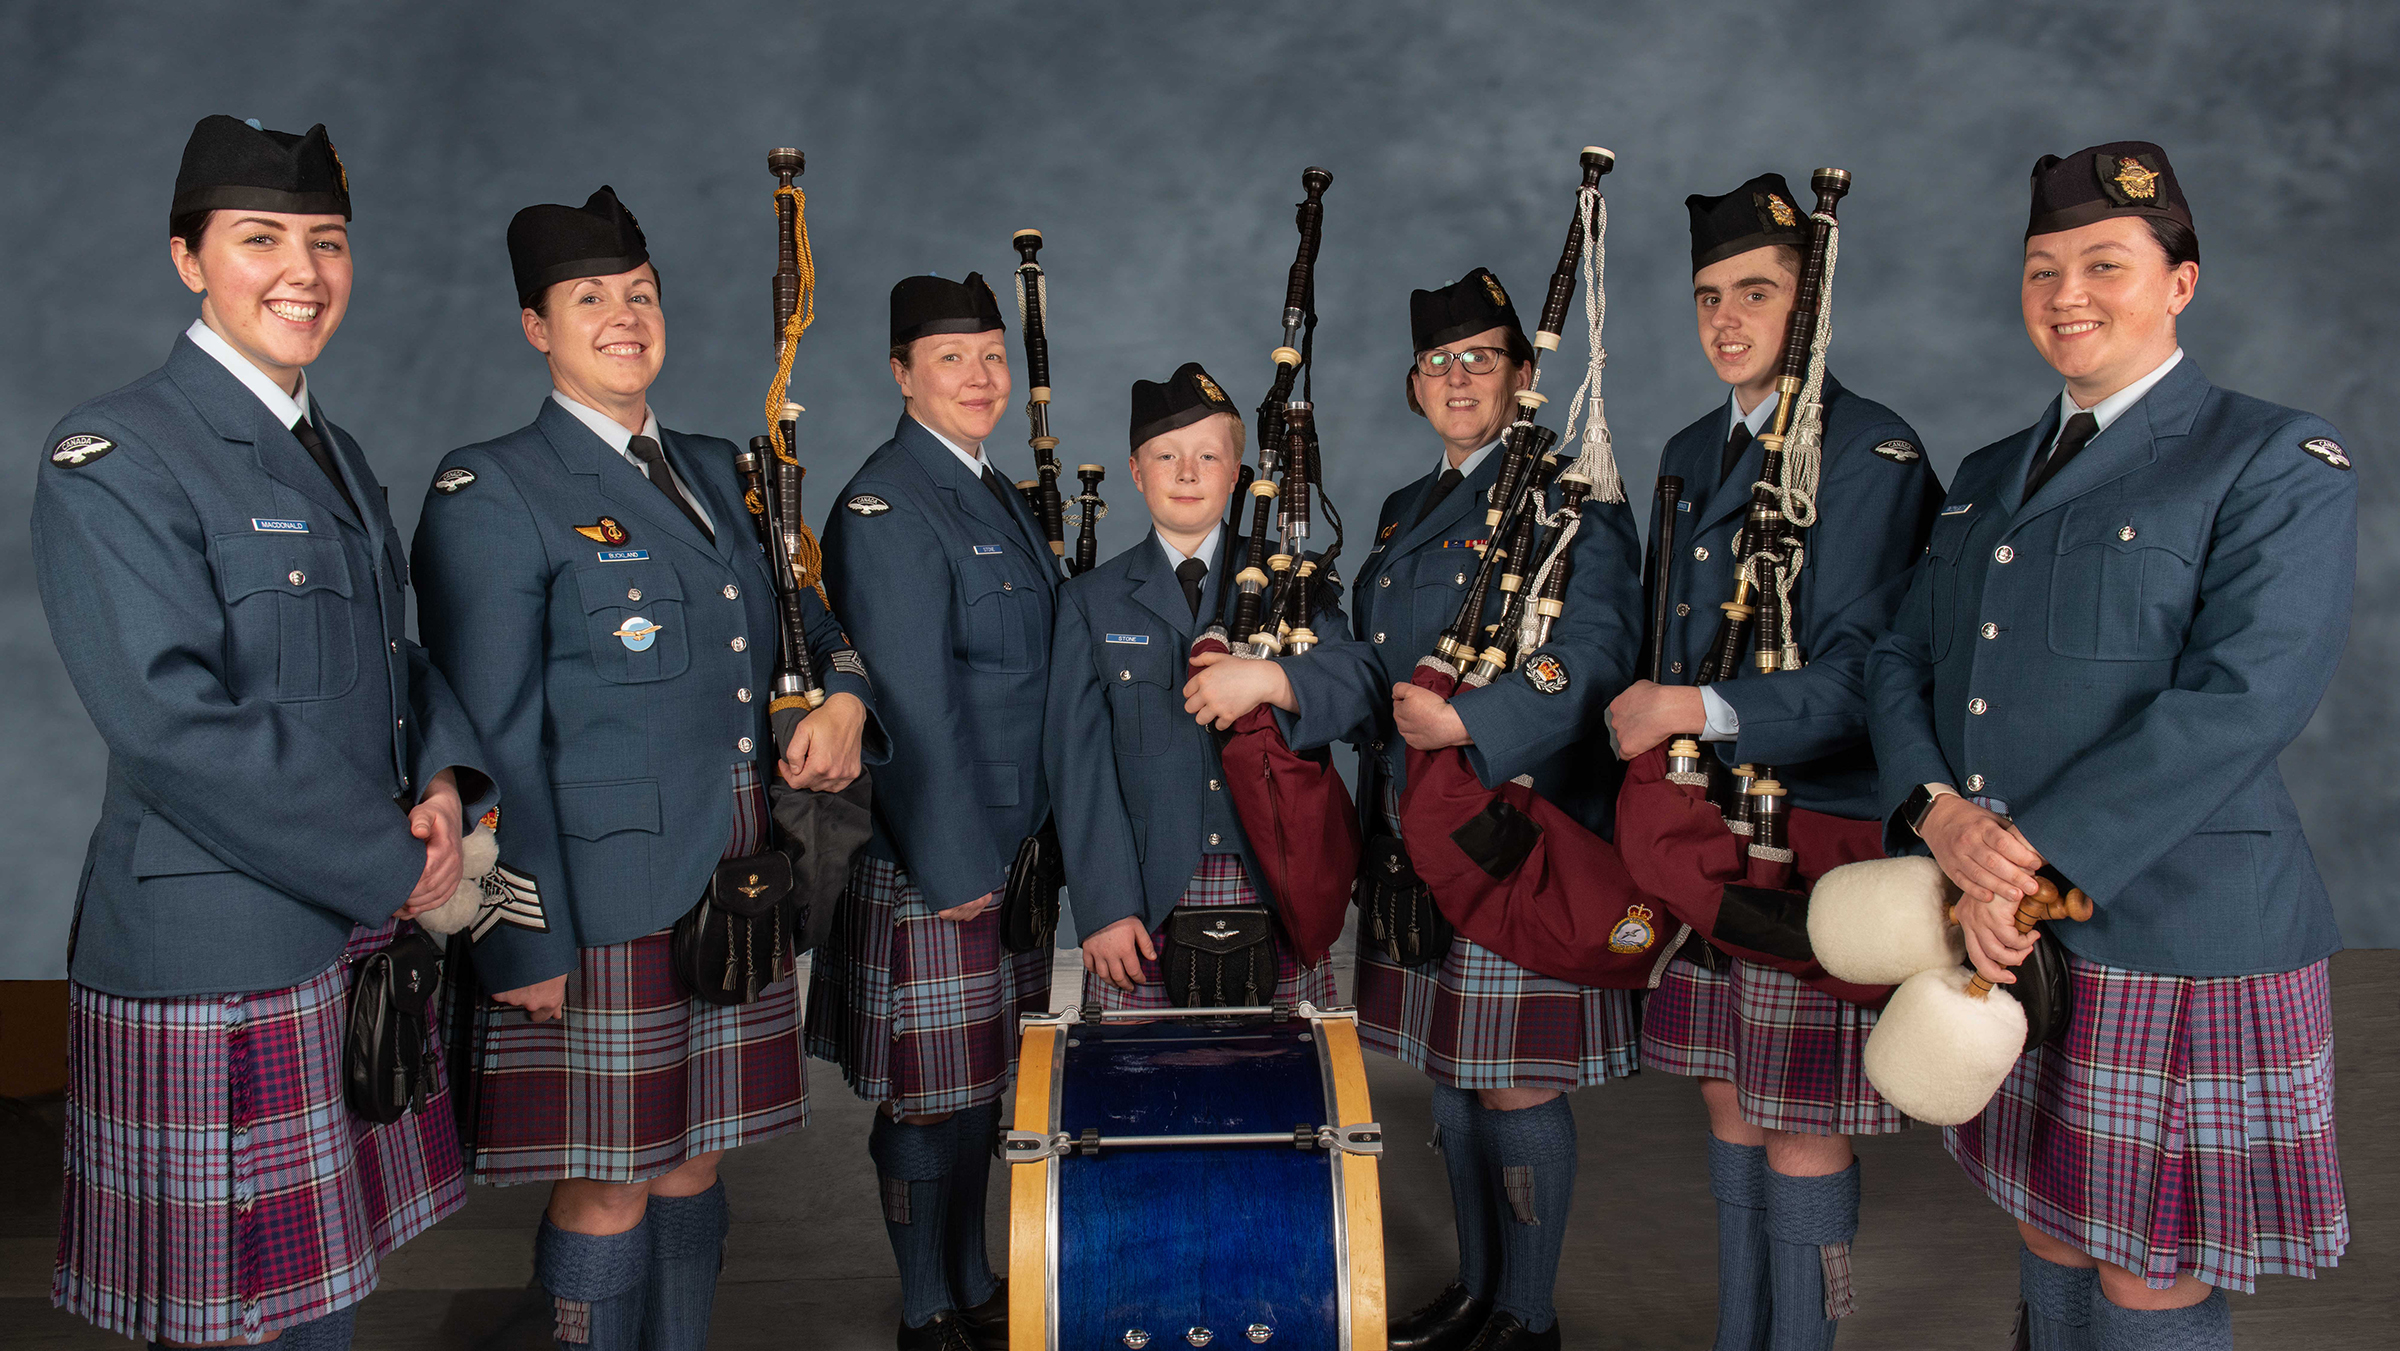 Seven people wearing military tunics and RCAF tartan kilts stand in a row behind a bass drum; five of them hold bagpipes.